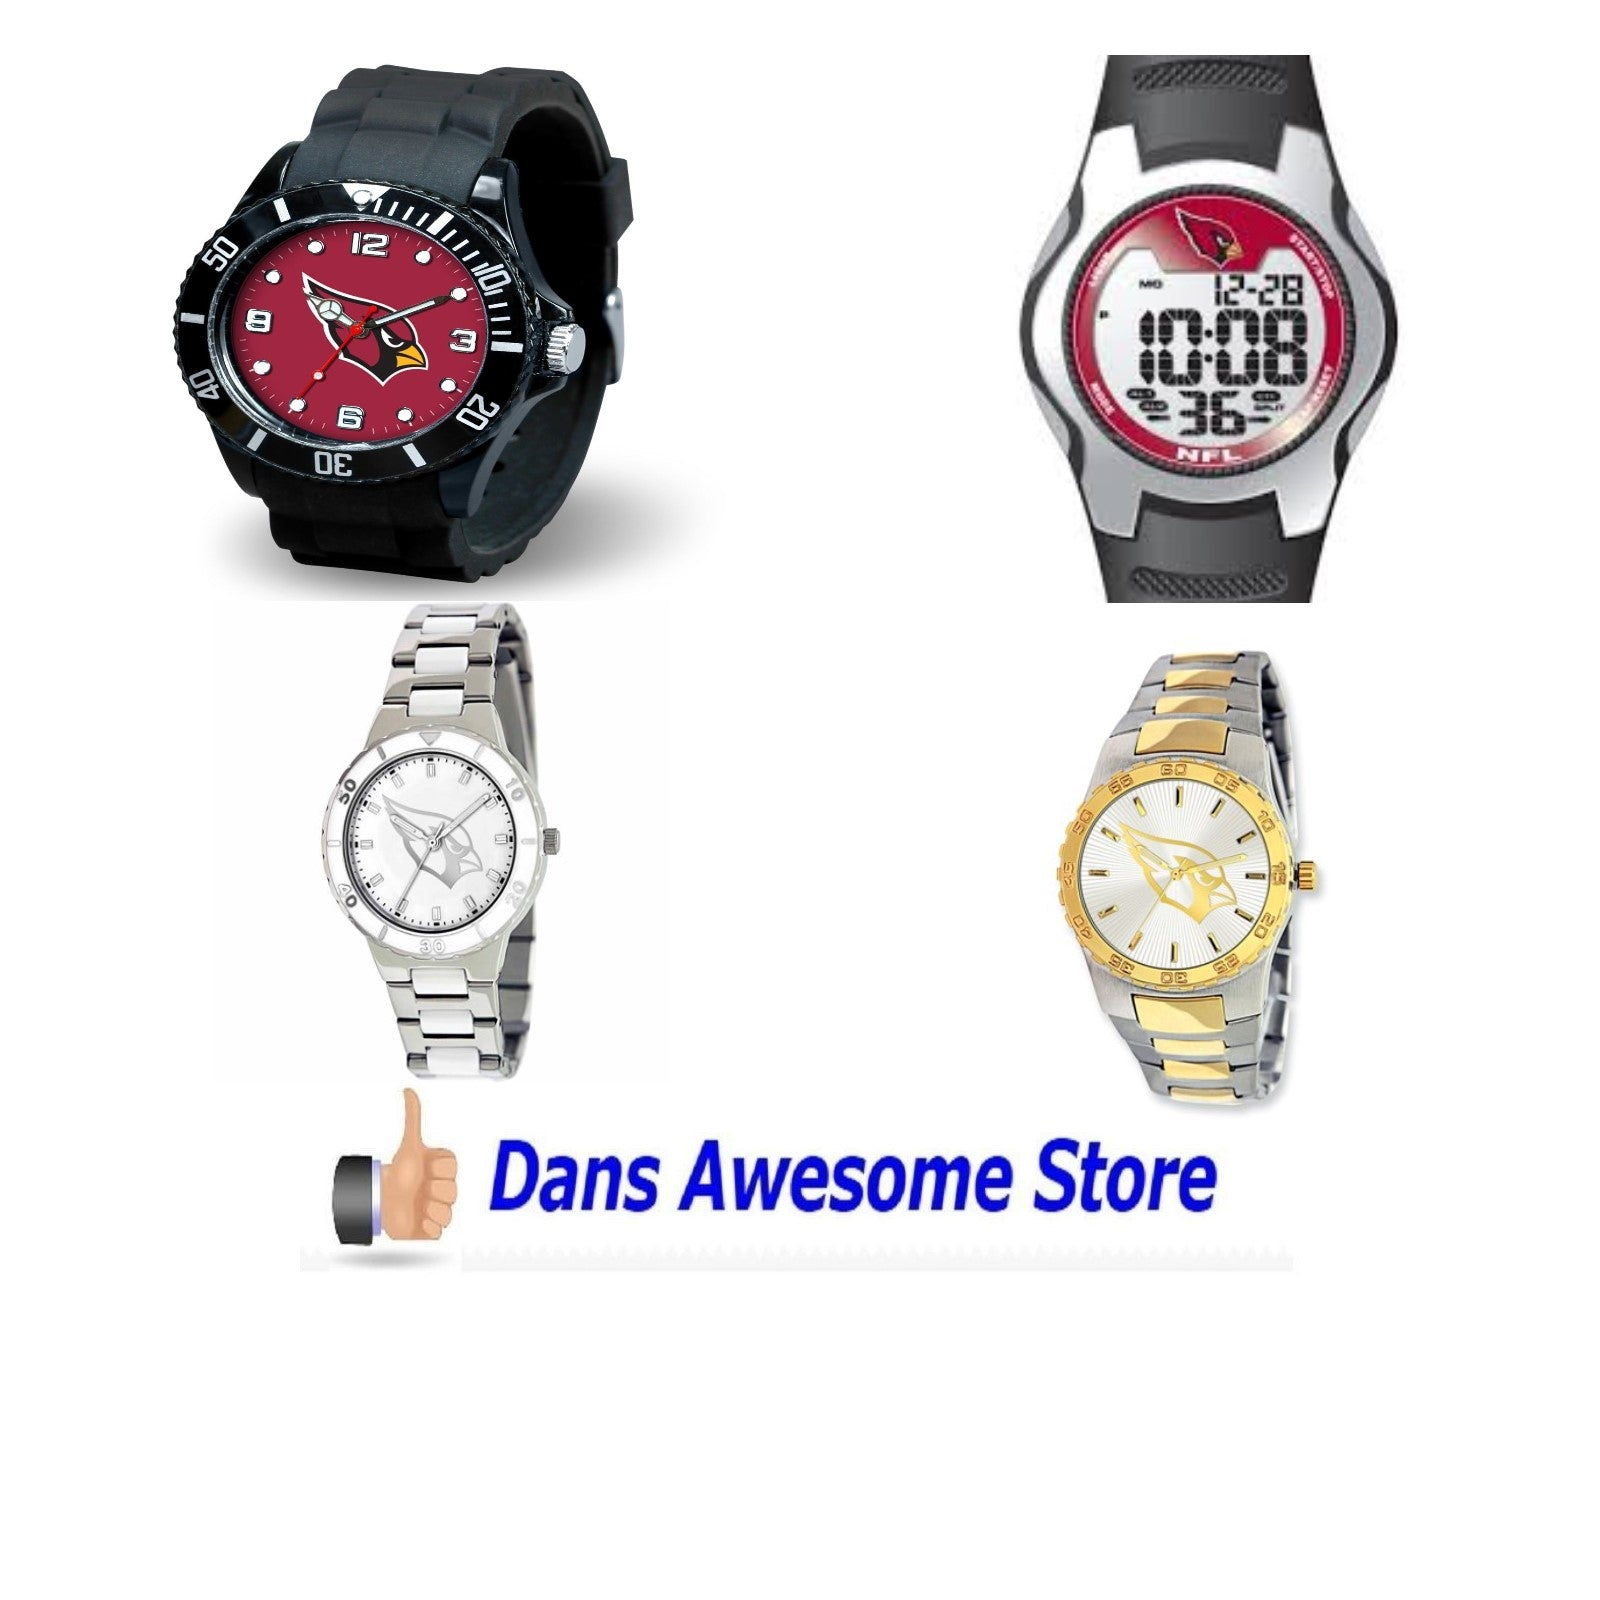 Arizona Cardinals Watch - Dans Awesome Store